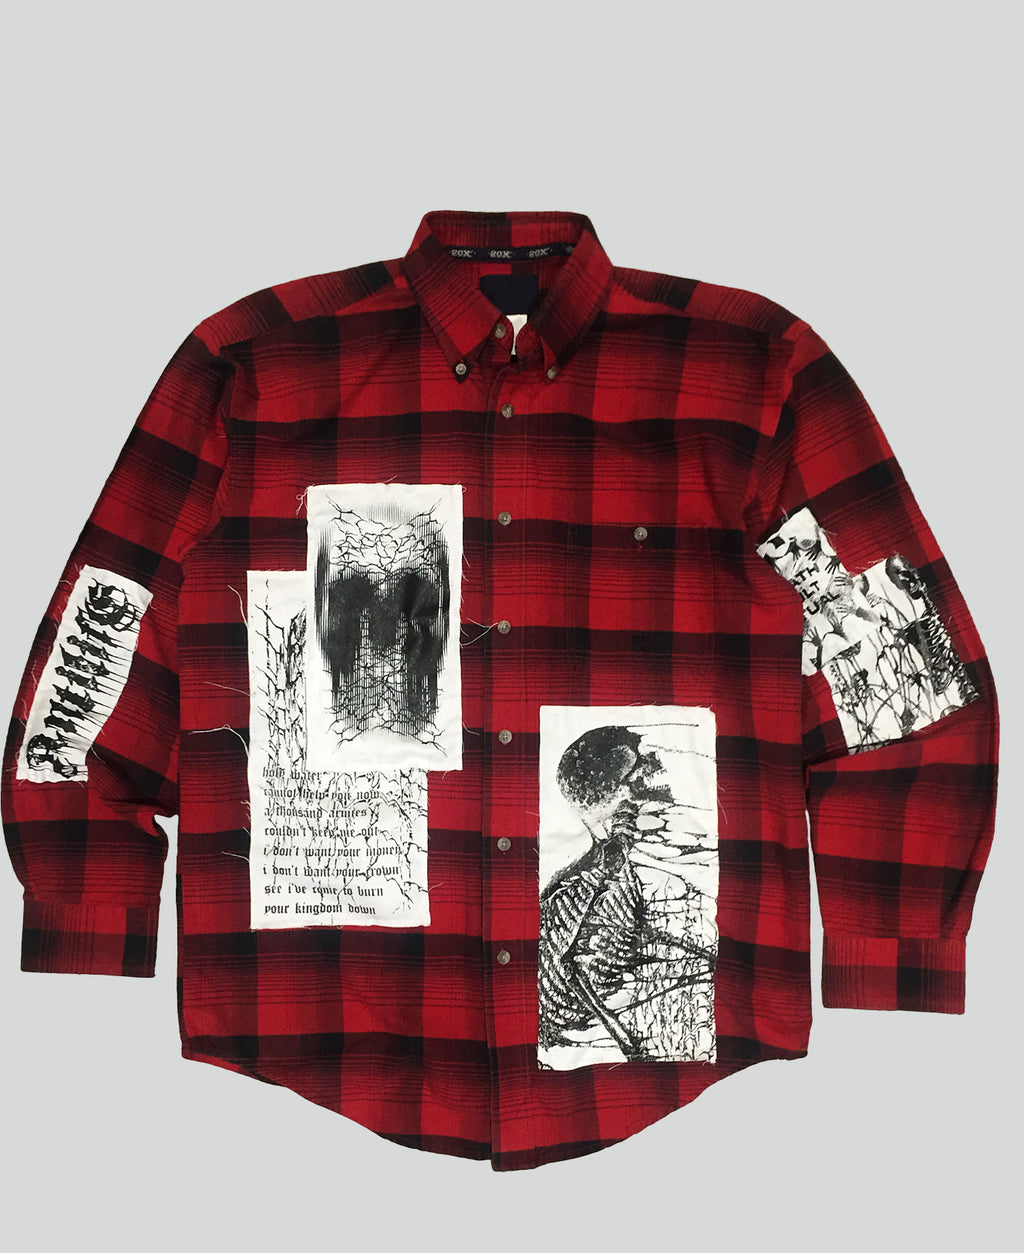 1/1 'Death Cult' flannel shirt - The Anti Life Ltd